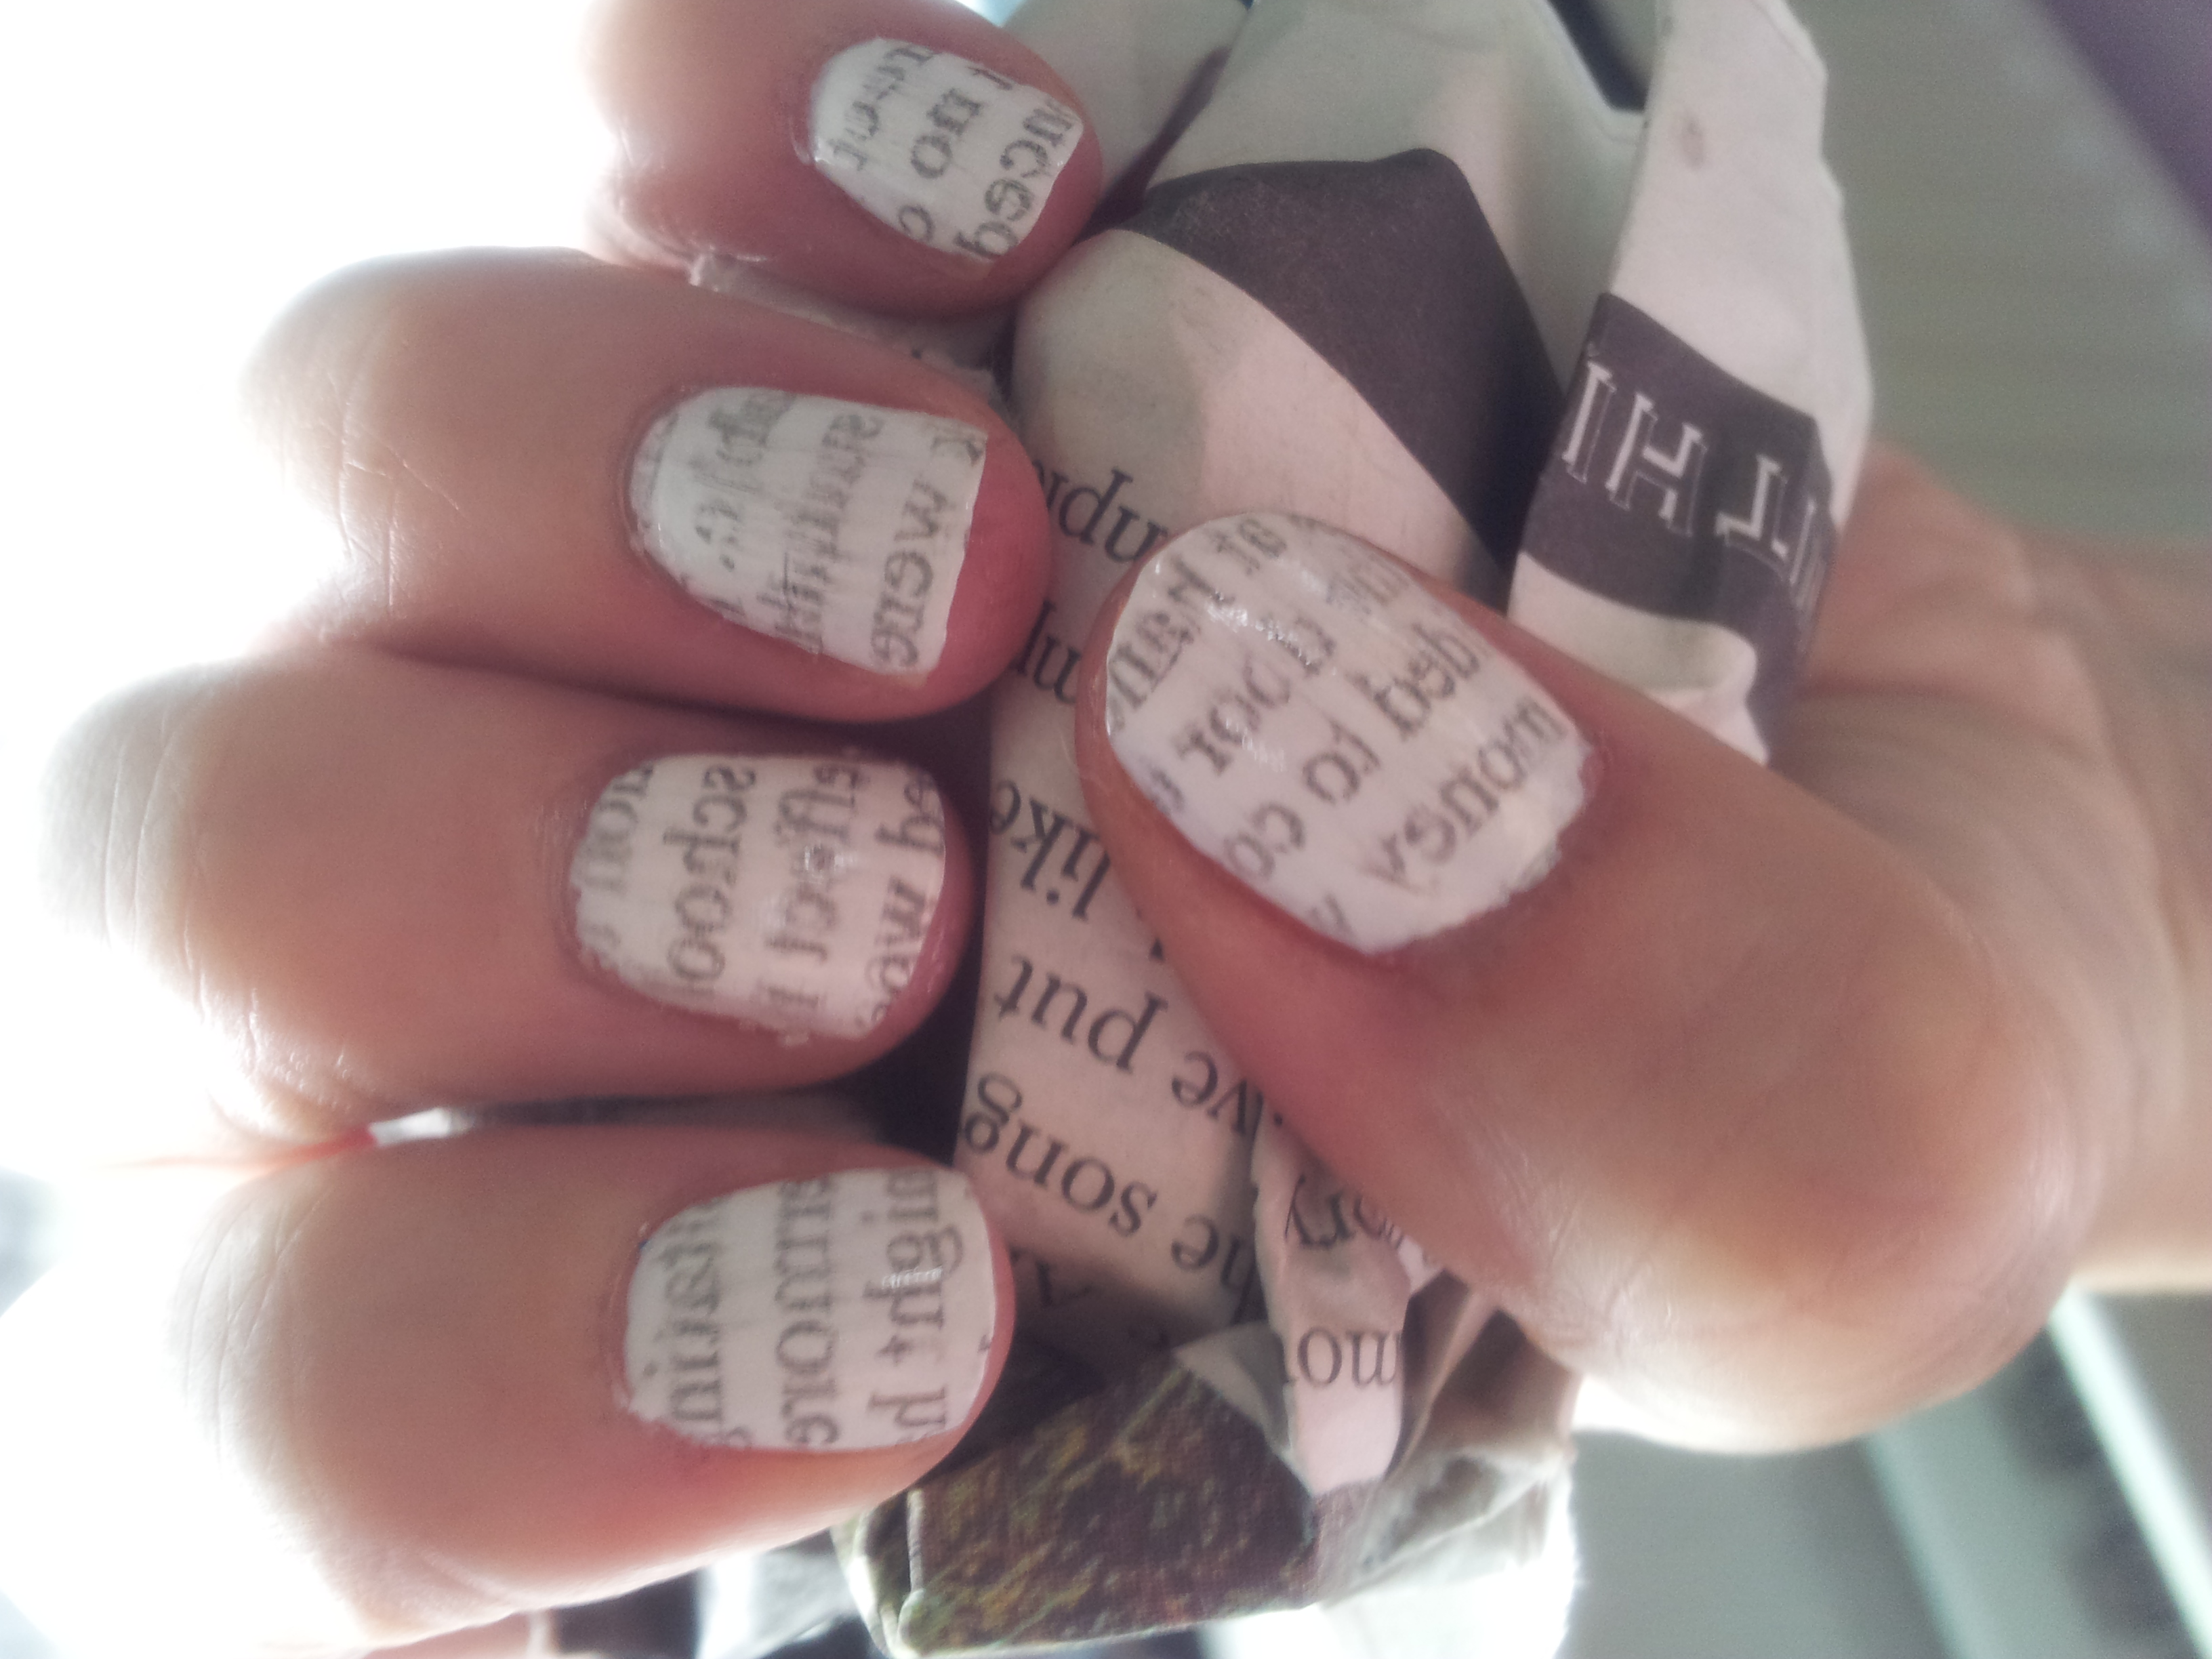 NEWSPAPER NAIL ART | Clairemarshy\'s Blog